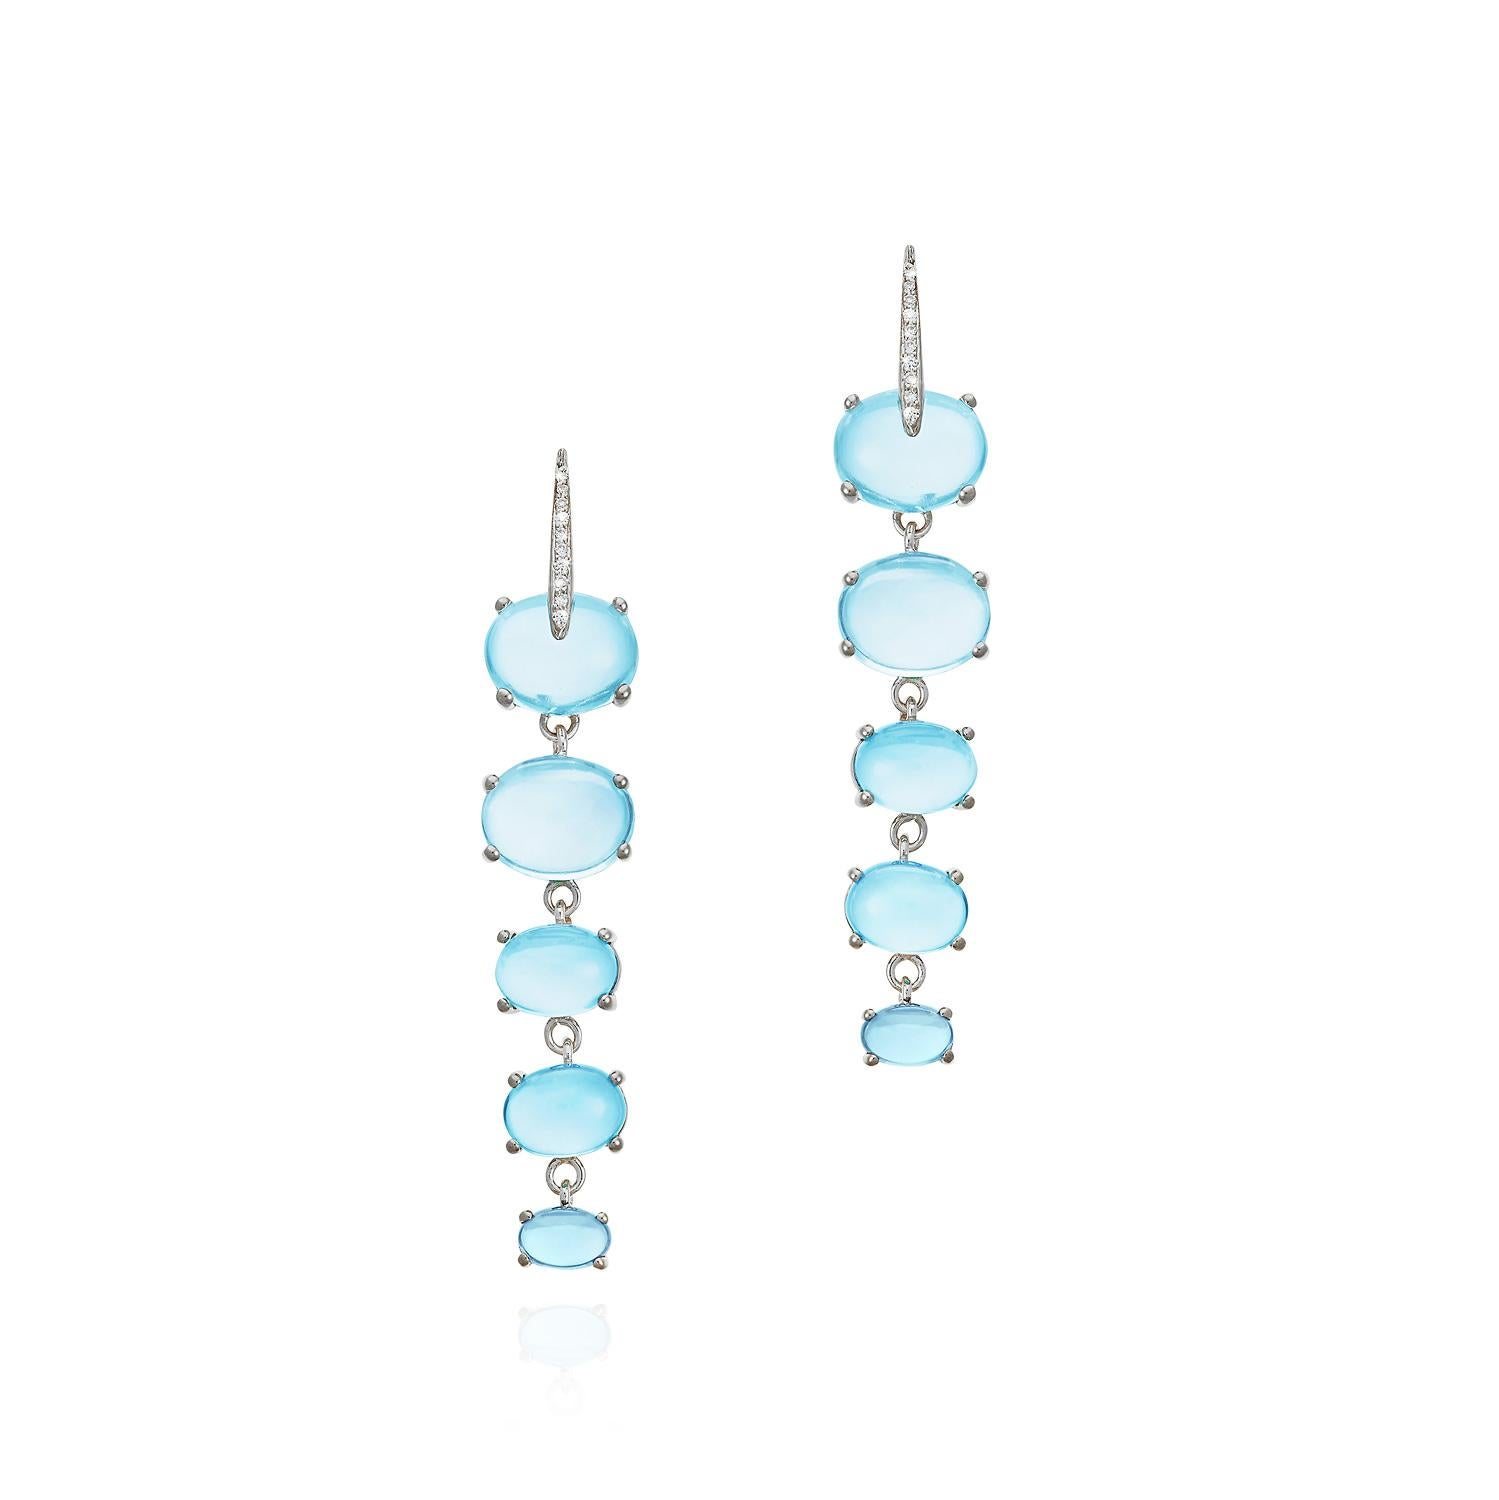 MAVIADA's Diamond Sardinia 18K White Gold Rainbow Blue Topaz Drop Earrings